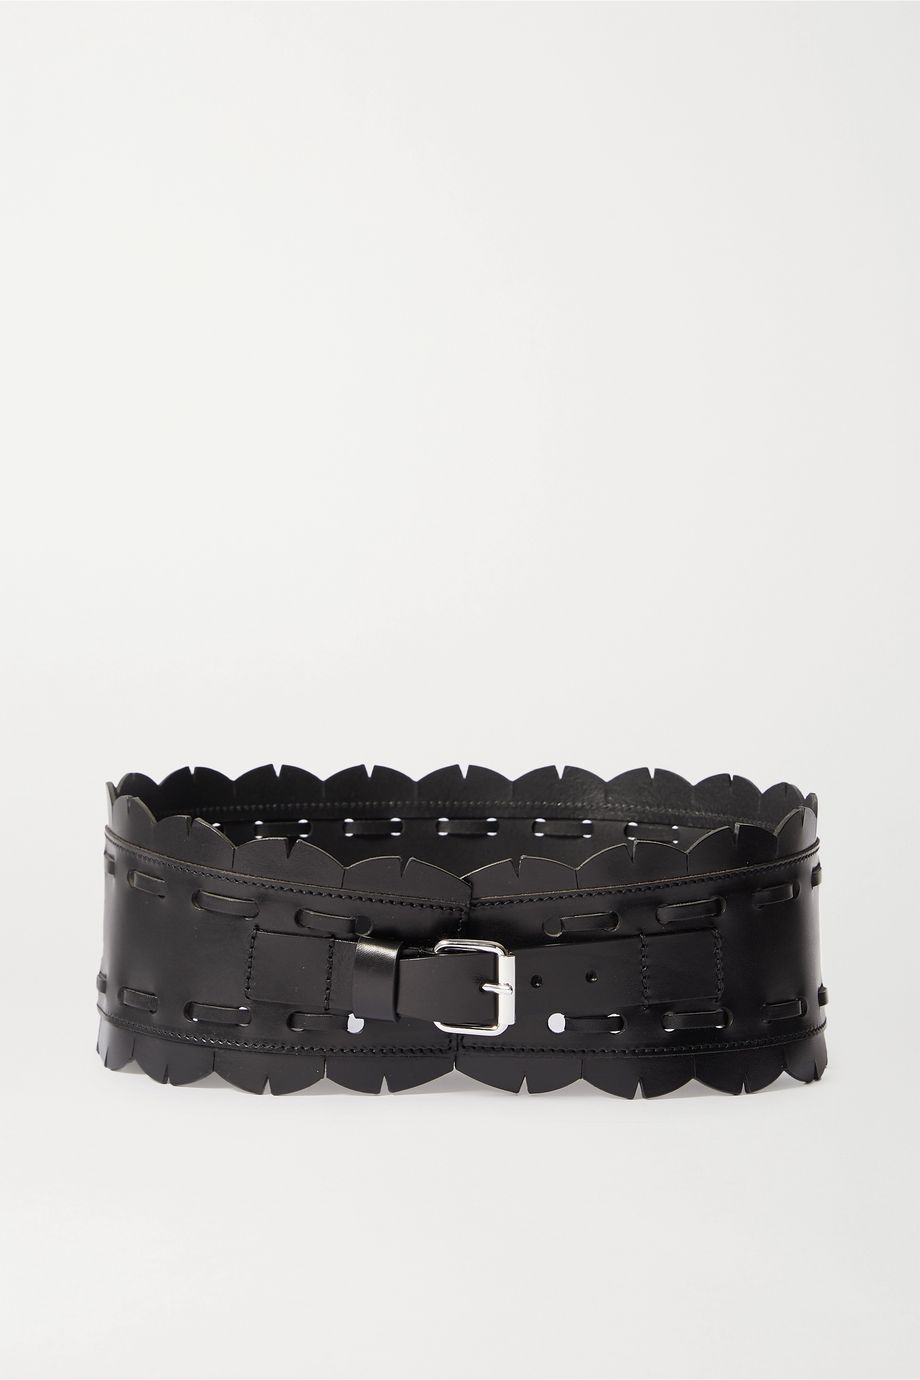 Isabel Marant Tendy topstitched leather waist belt